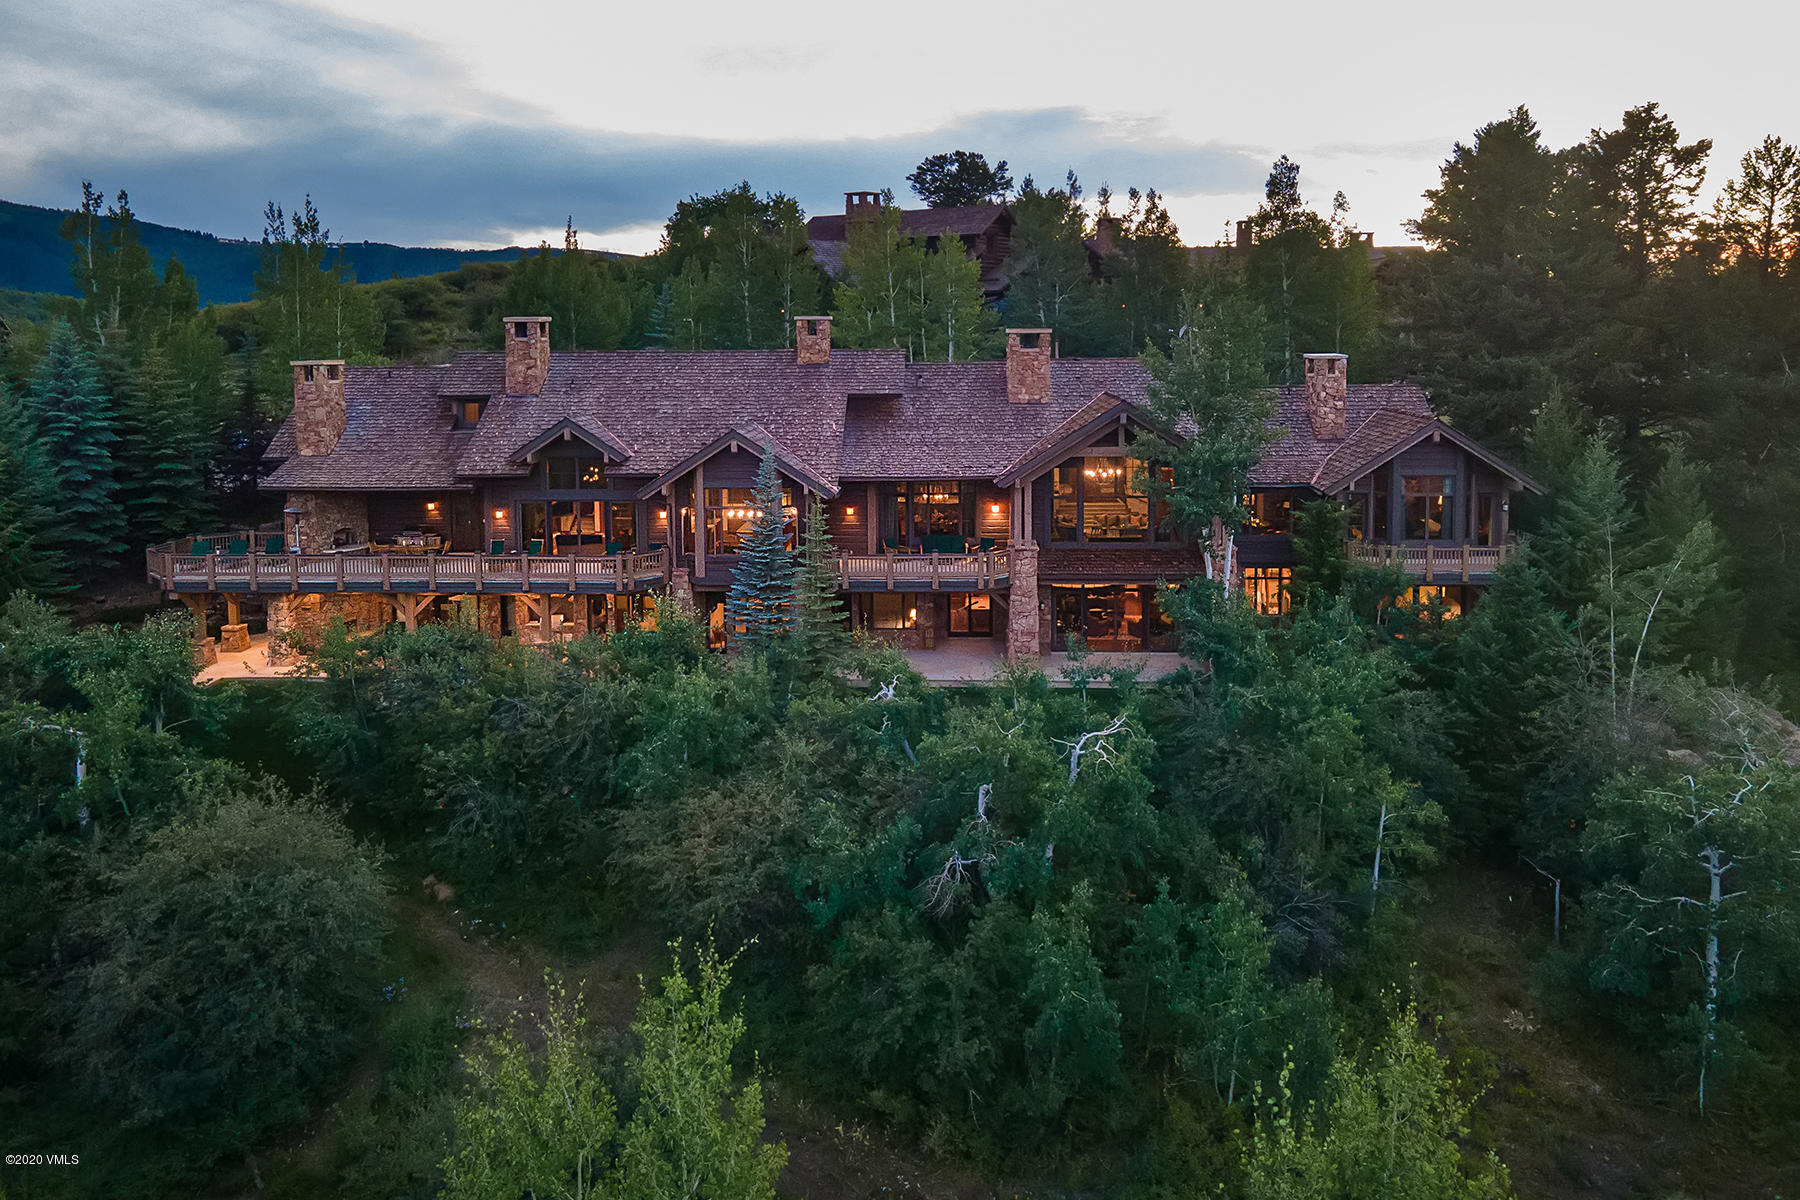 Designed to complement the splendor of its natural surroundings, this property is mountaintop luxury crafted in the historic tradition of the nation's grand lodges. This home features no less than 10 fireplaces on two levels, and awe-inspiring panoramic east-facing views throughout the main level. Soak in a breathtaking alpenglow scene that spans from the top of Beaver Creek Mountain across Vail's Game Creek Bowl and beyond to the knife-edged jags of the legendary Gore Range.Tucked away in the mature alpine landscape, this exquisite home provides year-round enjoyment of the vast recreation just outside the door. Winter months offer ski-in/ski-out access to the Bachelor Gulch chairlift via the Everkrisp and Ridge Rider private homeowner ski-ways that weave in and out of this exclusive on-mountain community. And, temperate summer months display a colorful sea of wildflowers, easily accessible with the Village-to-Village hiking and mountain biking trail nearby. 168PeakView.com/?mls